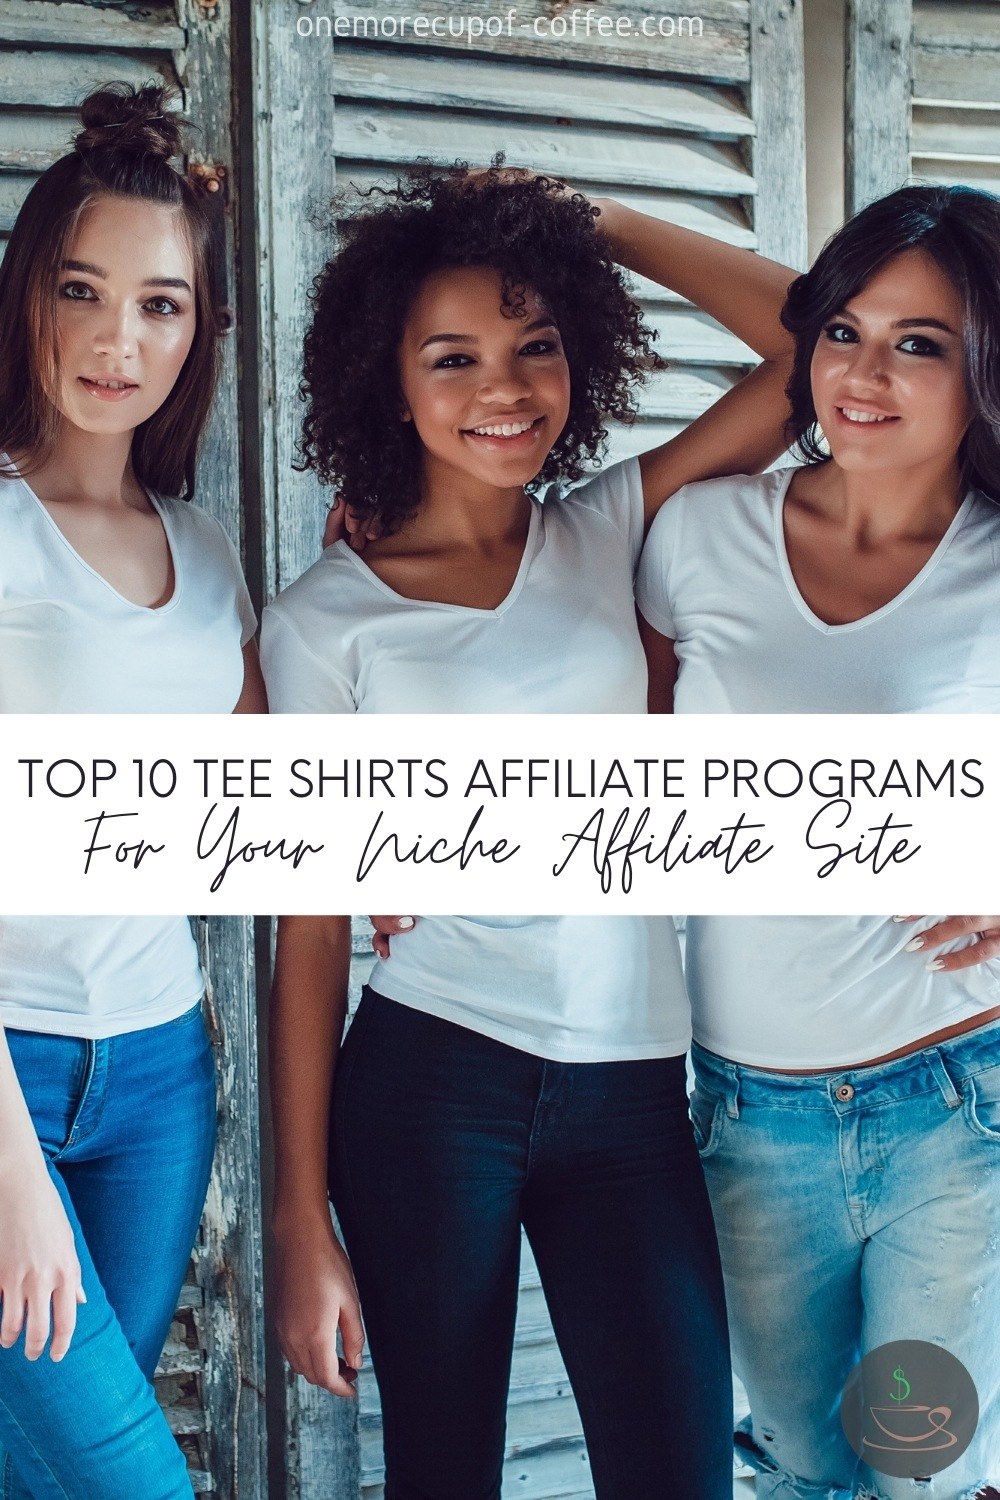 three female models posing for the camera wearing white tee shirts and jeans, with text overlay